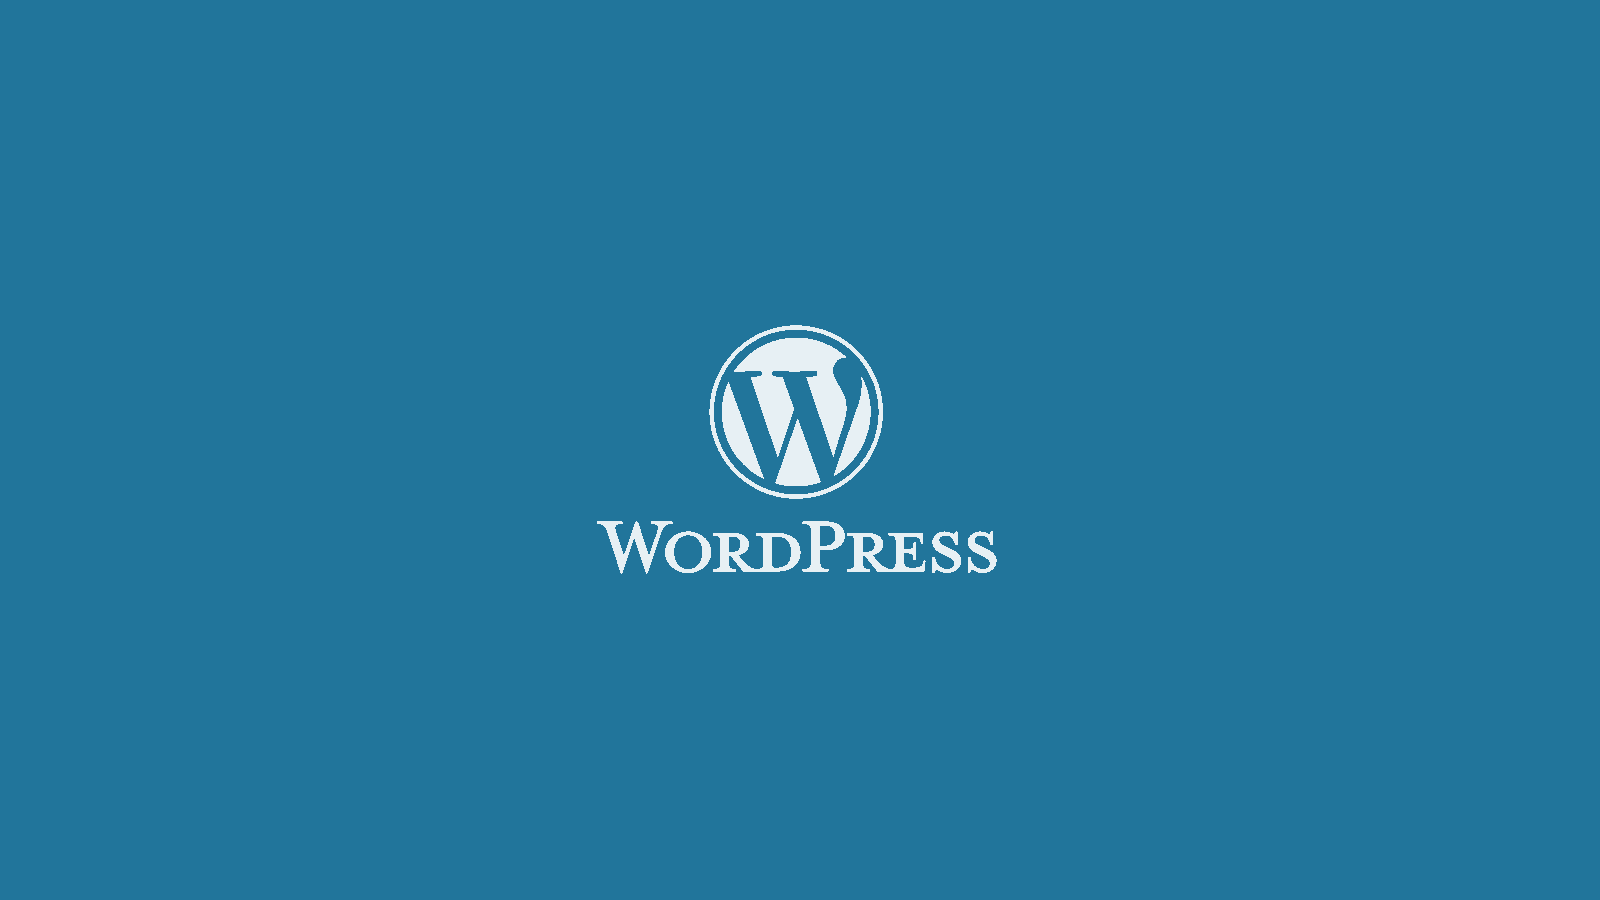 Wordpress-Wallpapers-for-Bloggers-5